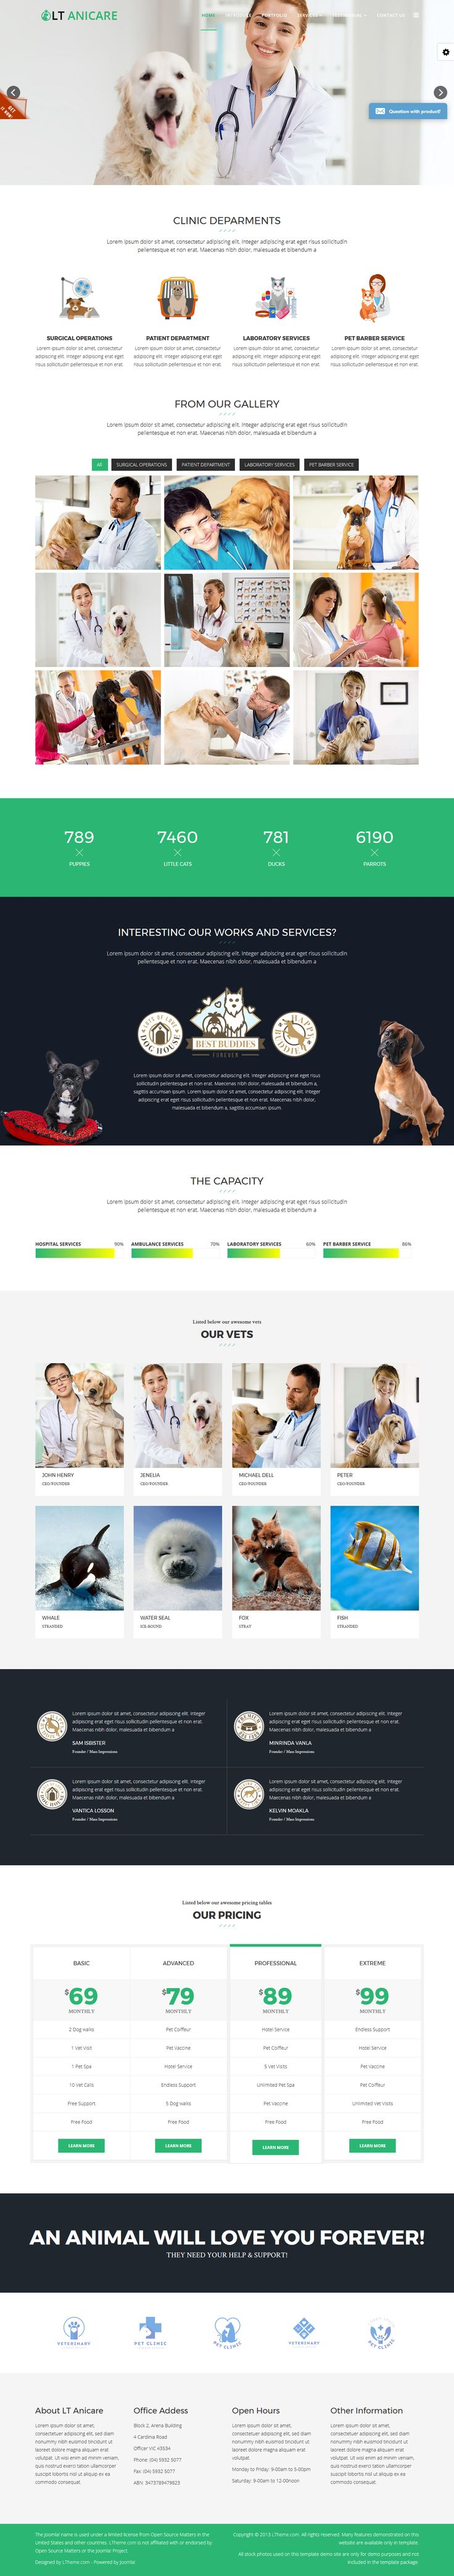 L.Theme - LT Anicare Onepage – Single Animal Health Care Center Onepage Joomla template ----- Access PRO version with 25% OFF on this week!  Coupon code...